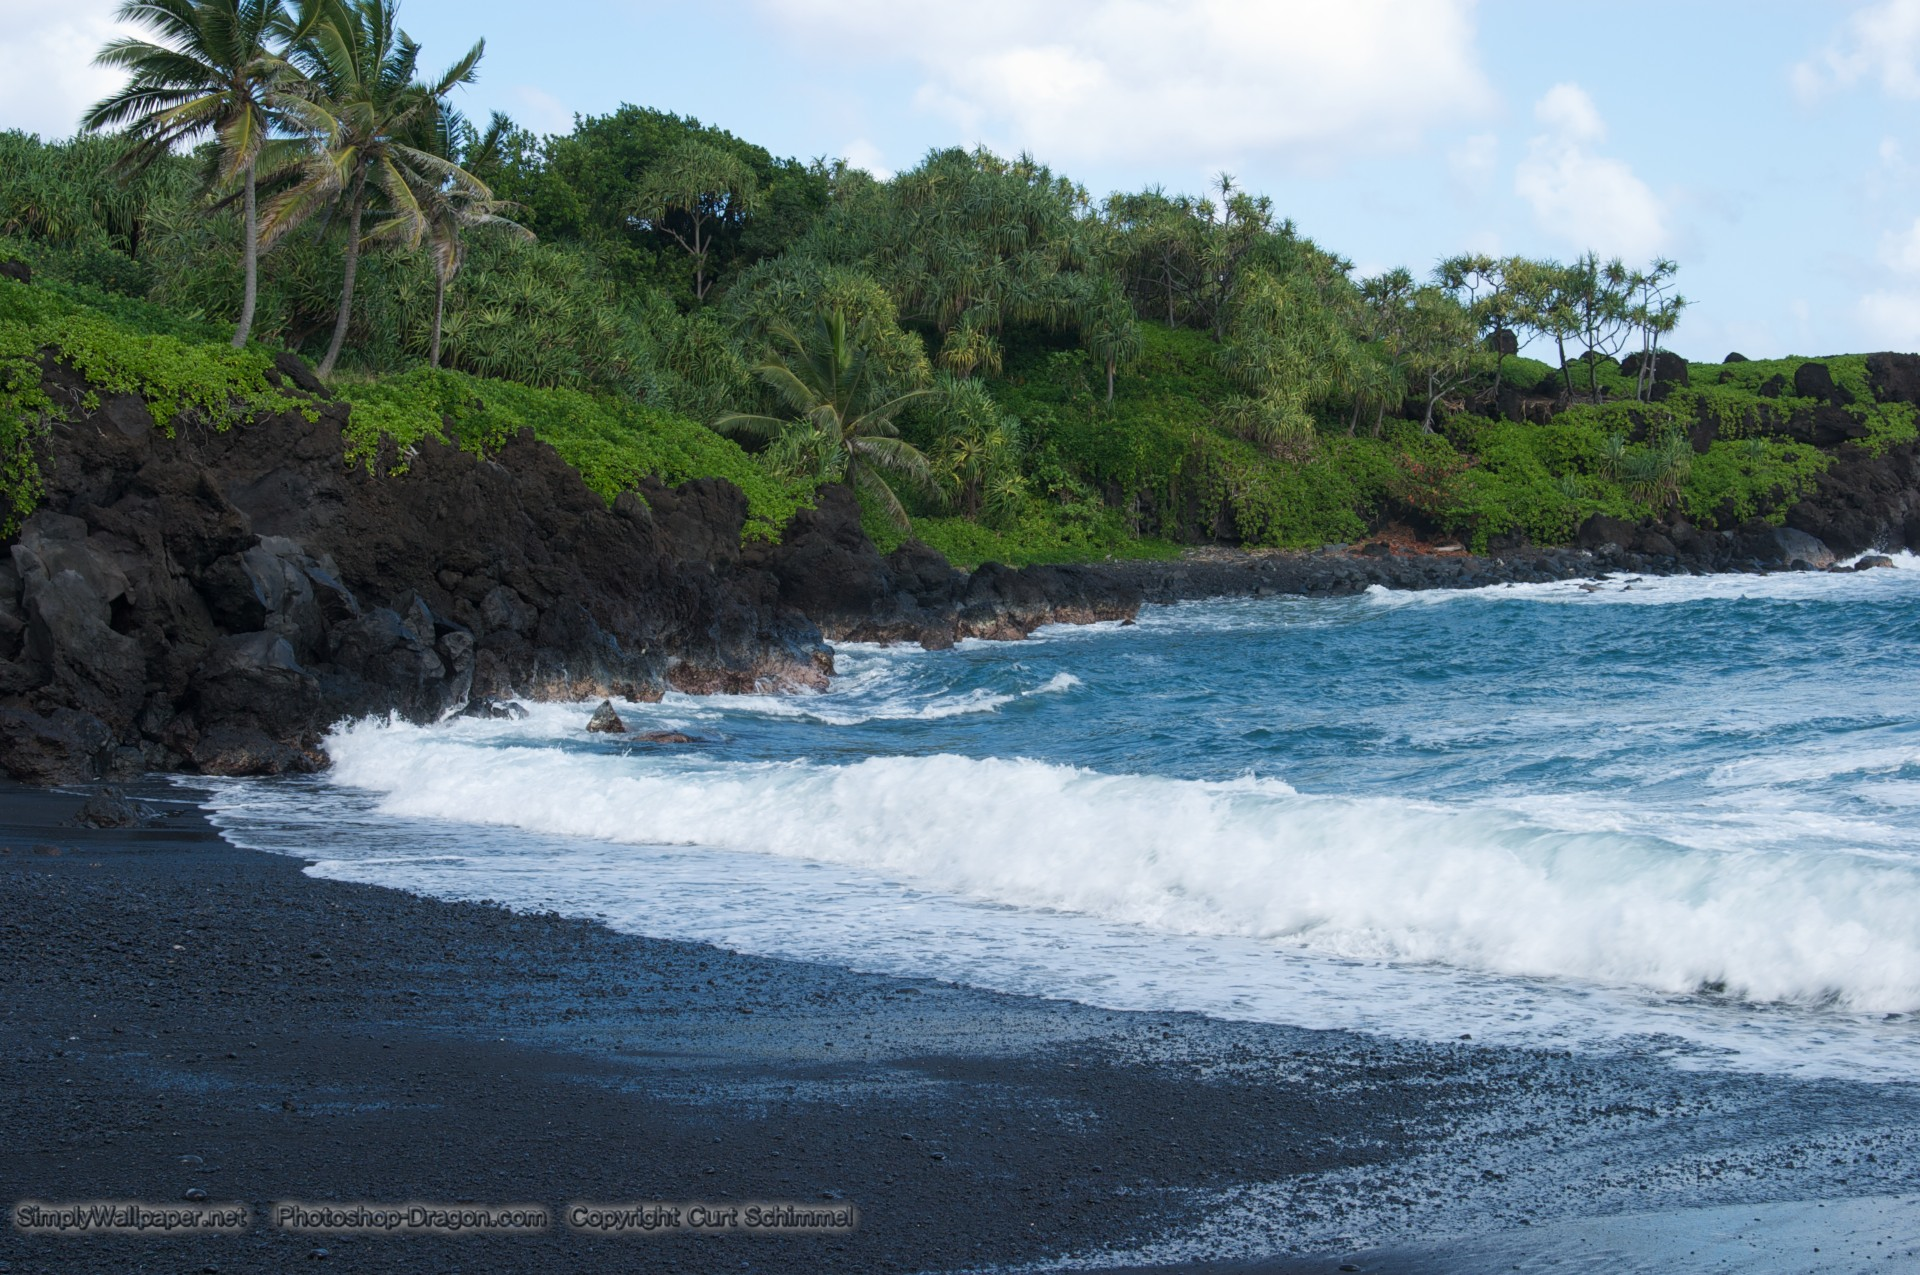 Waves break on shore of this black sand beach with lush tropical 1920x1275